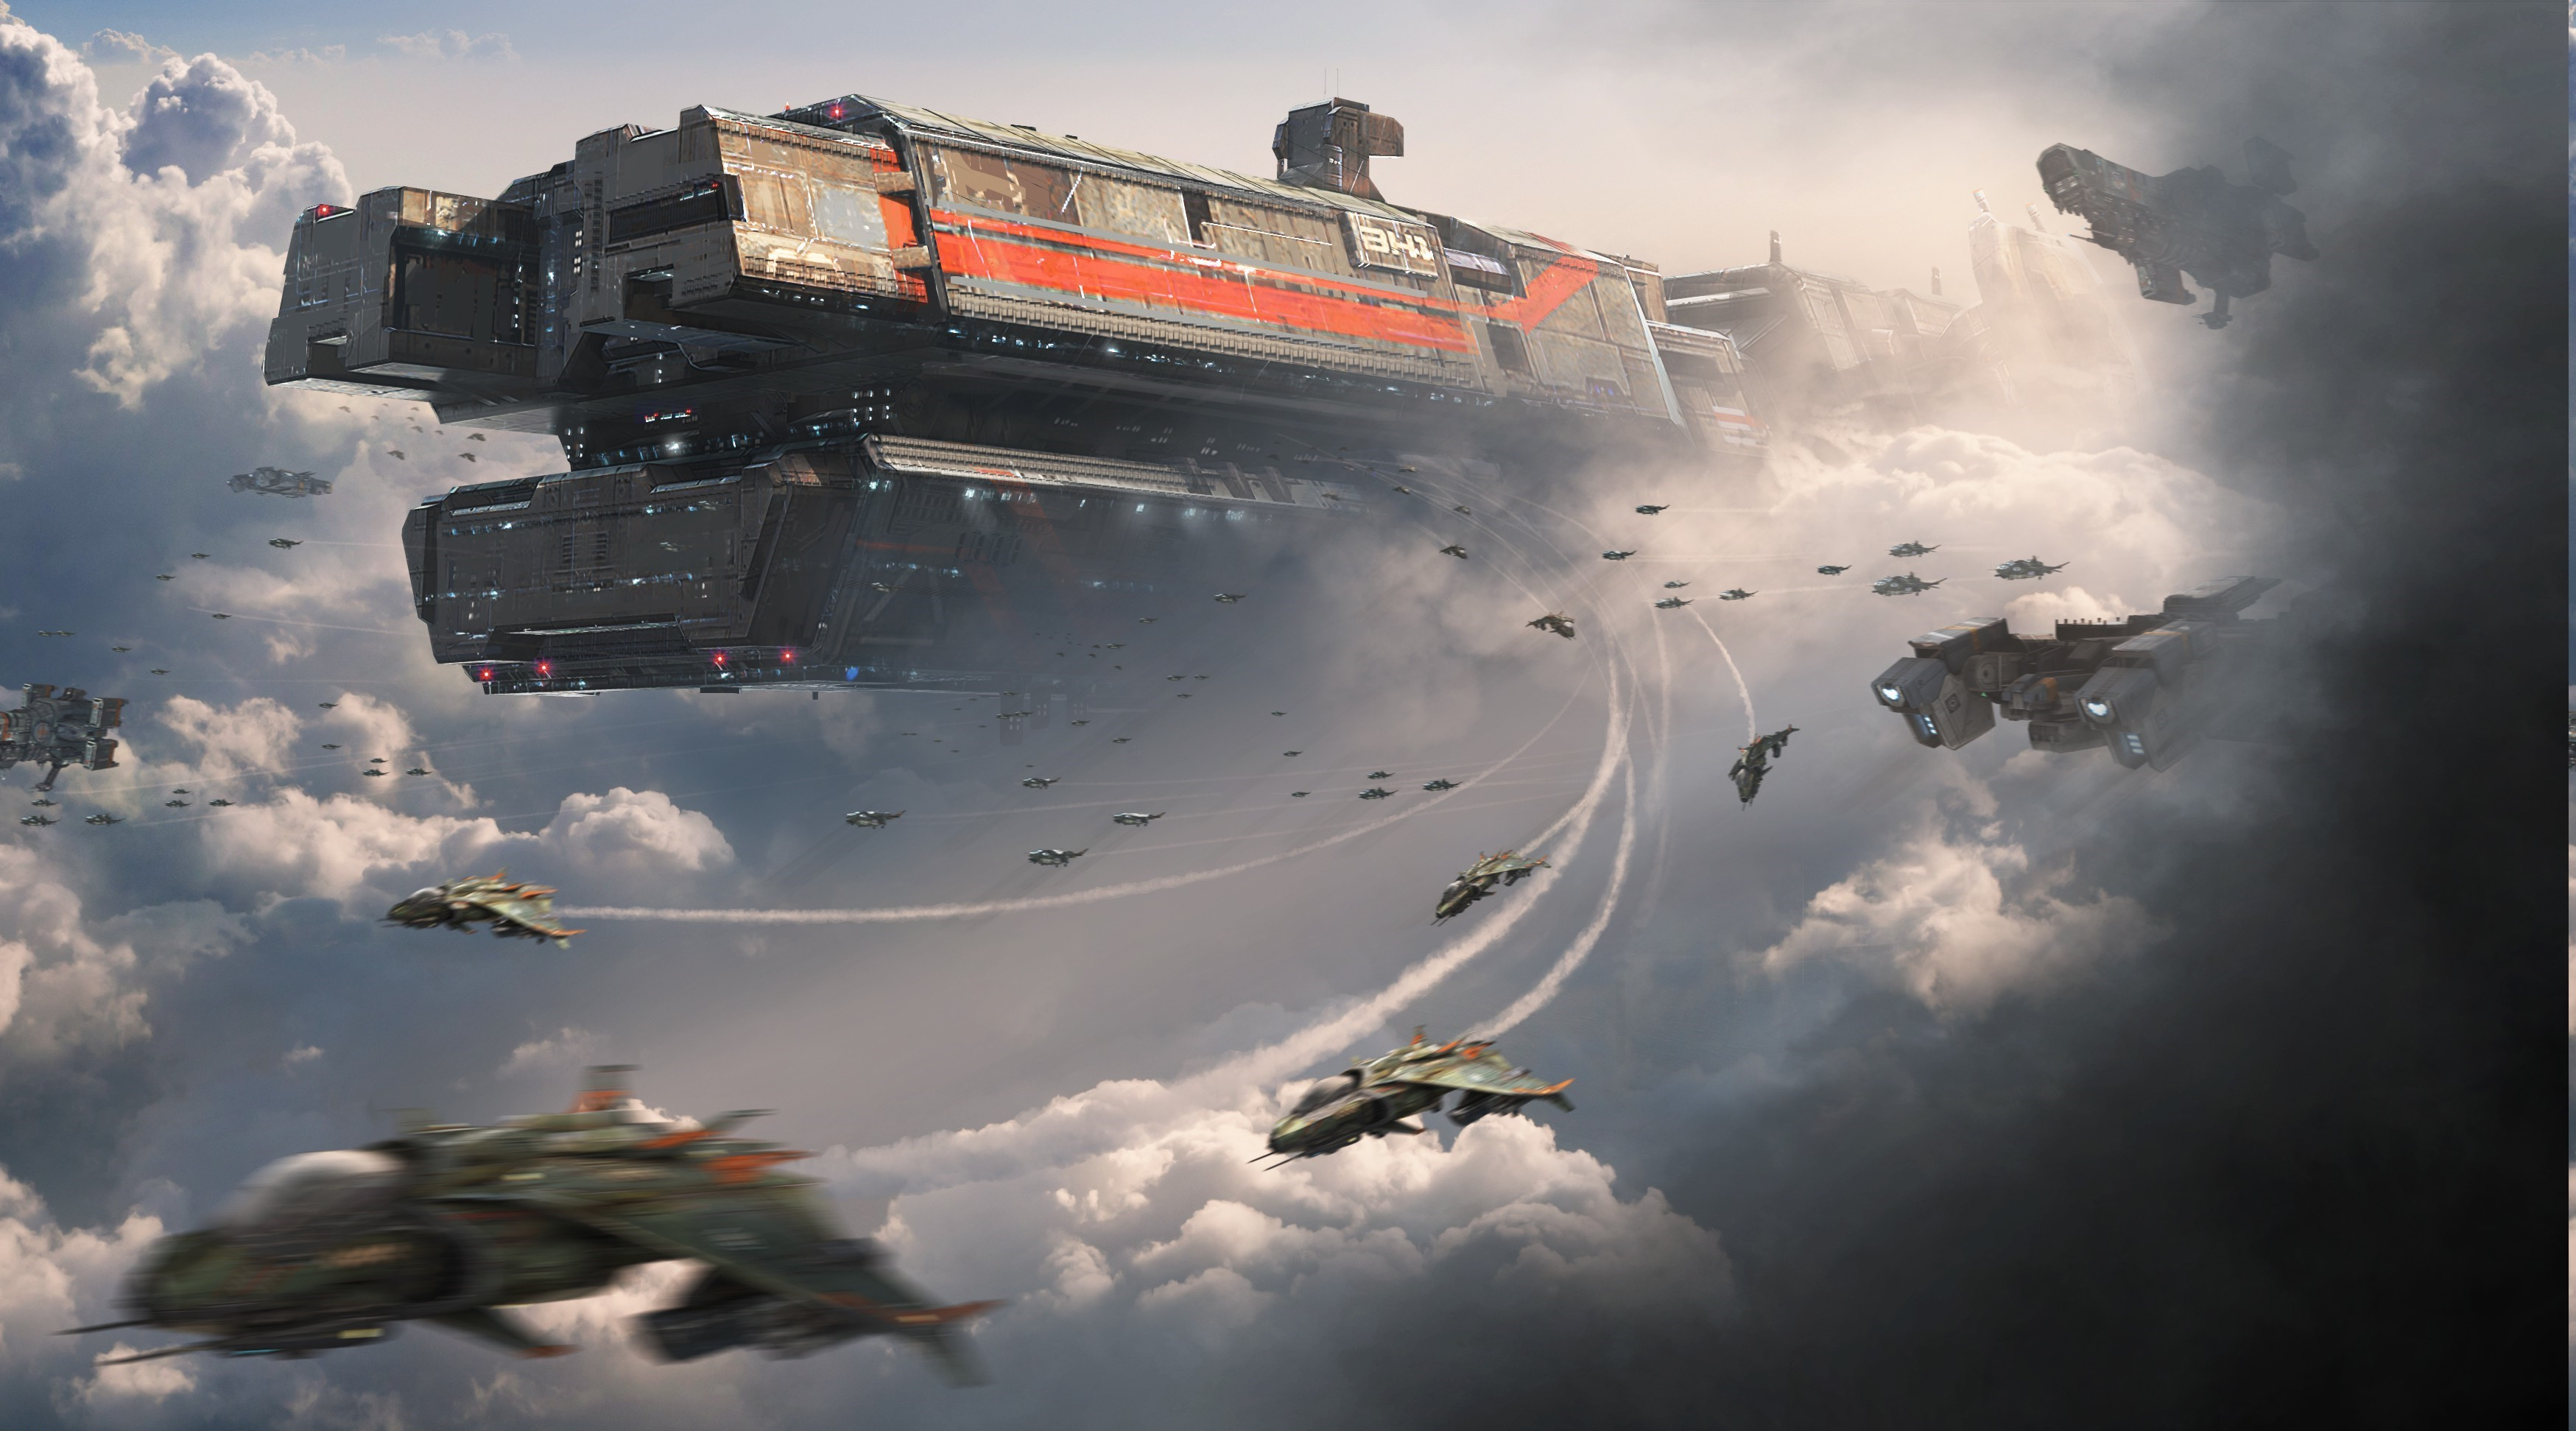 Science Fiction Wallpapers Sci Fi Wallpapers 2 Desktop: Science Fiction Wallpapers ·① WallpaperTag